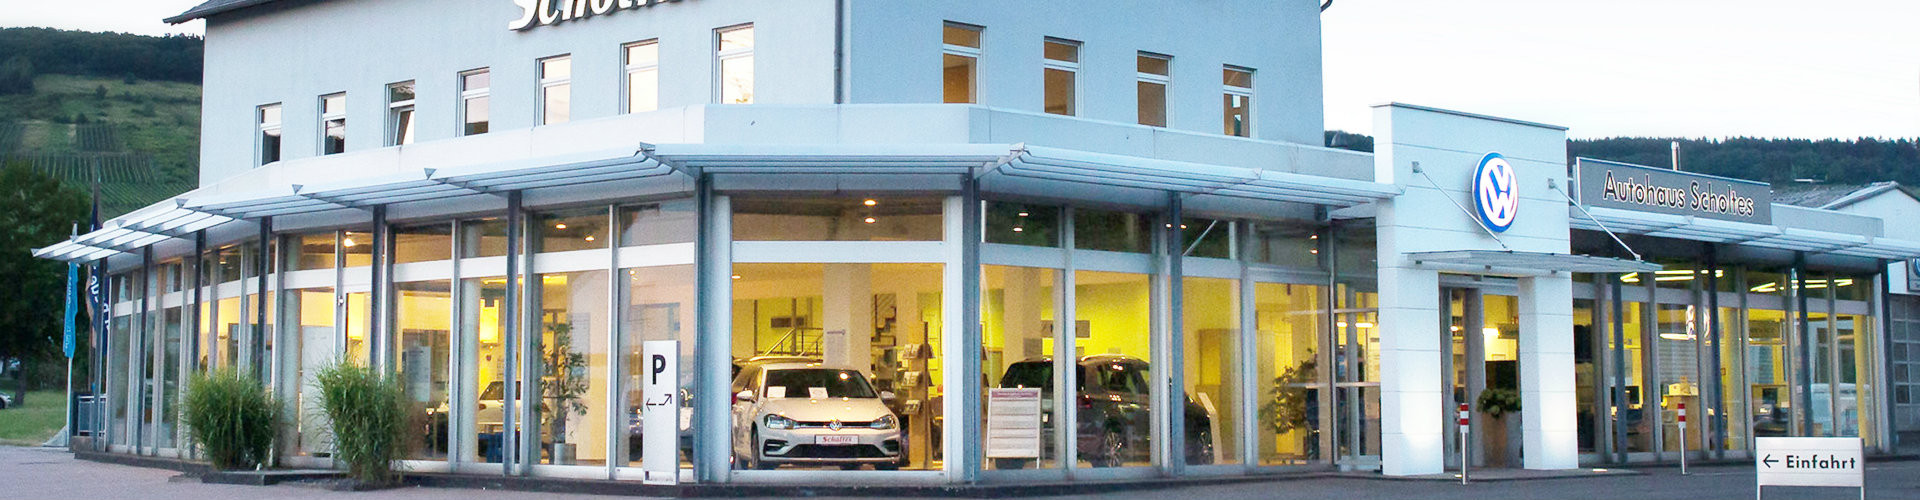 Autohaus Scholtes in Mehring an der Mosel